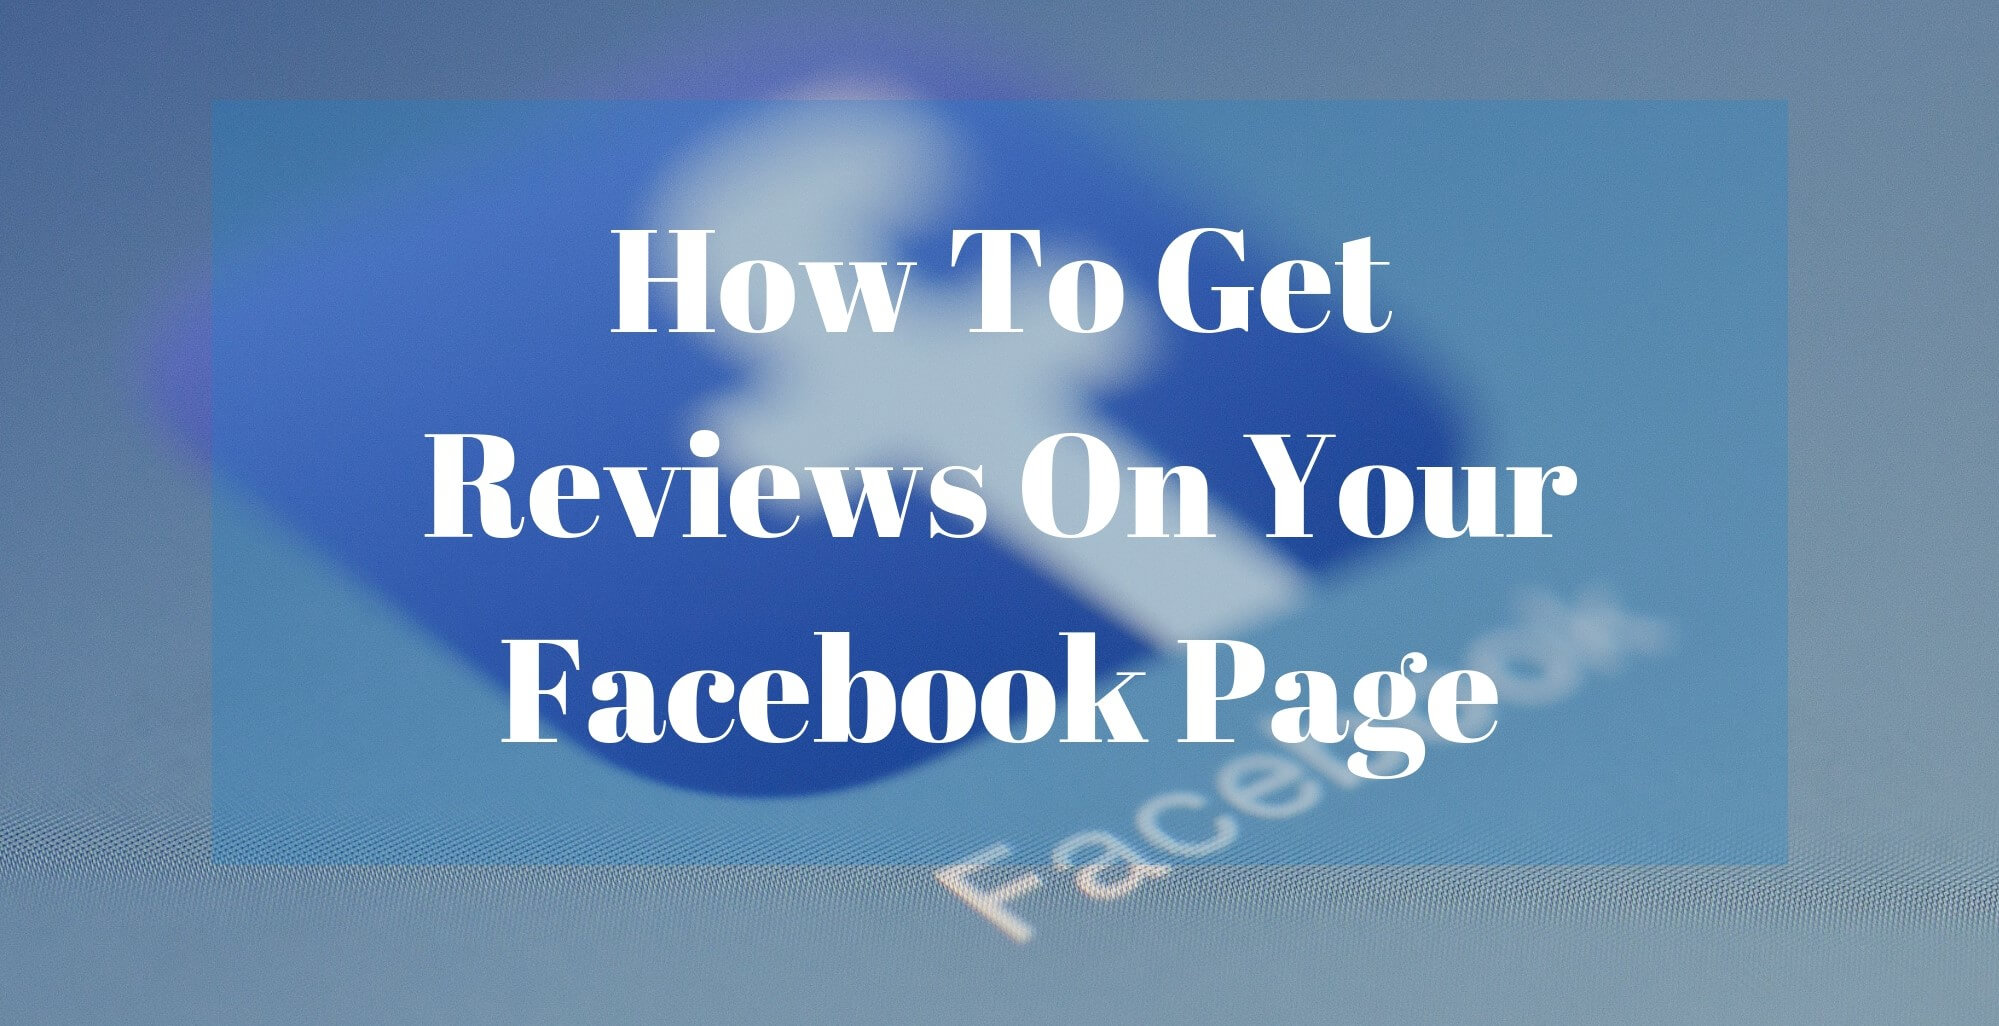 How to get reviews on your Facebook page